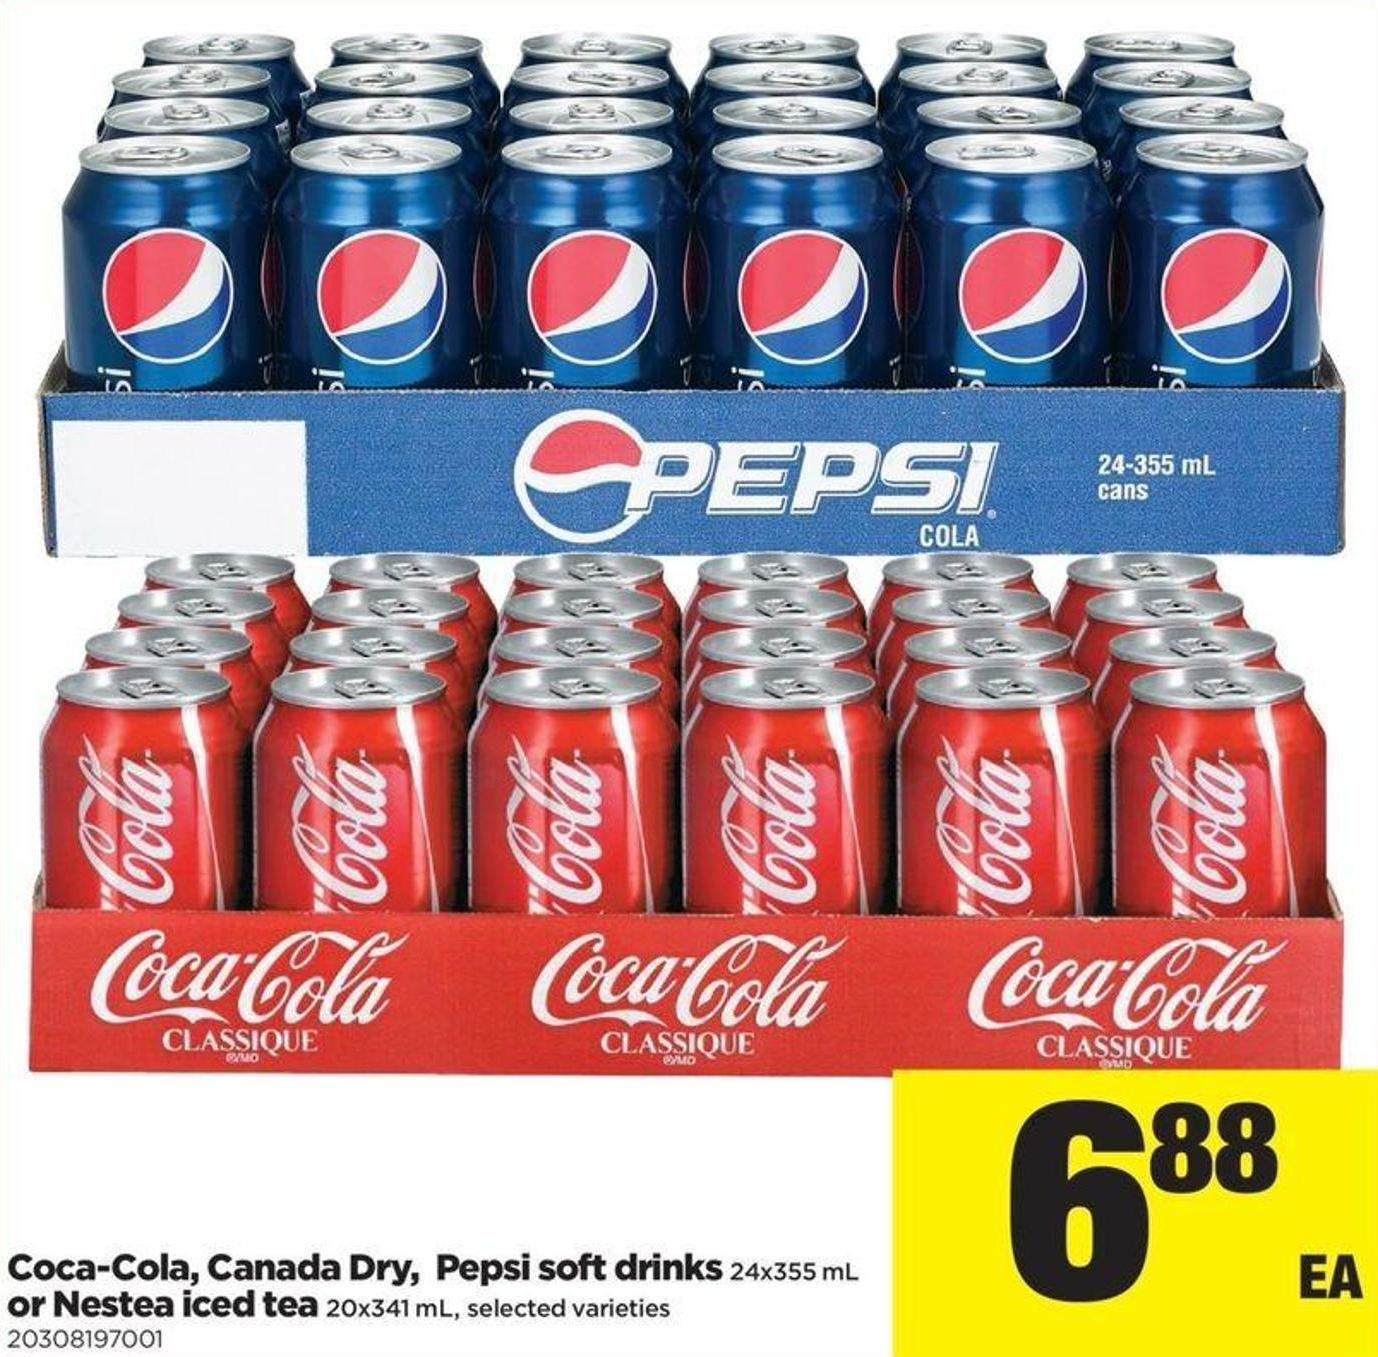 Coca-cola - Canada Dry - Pepsi Soft Drinks 24x355 Ml Or Nestea Iced Tea 20x341 Ml